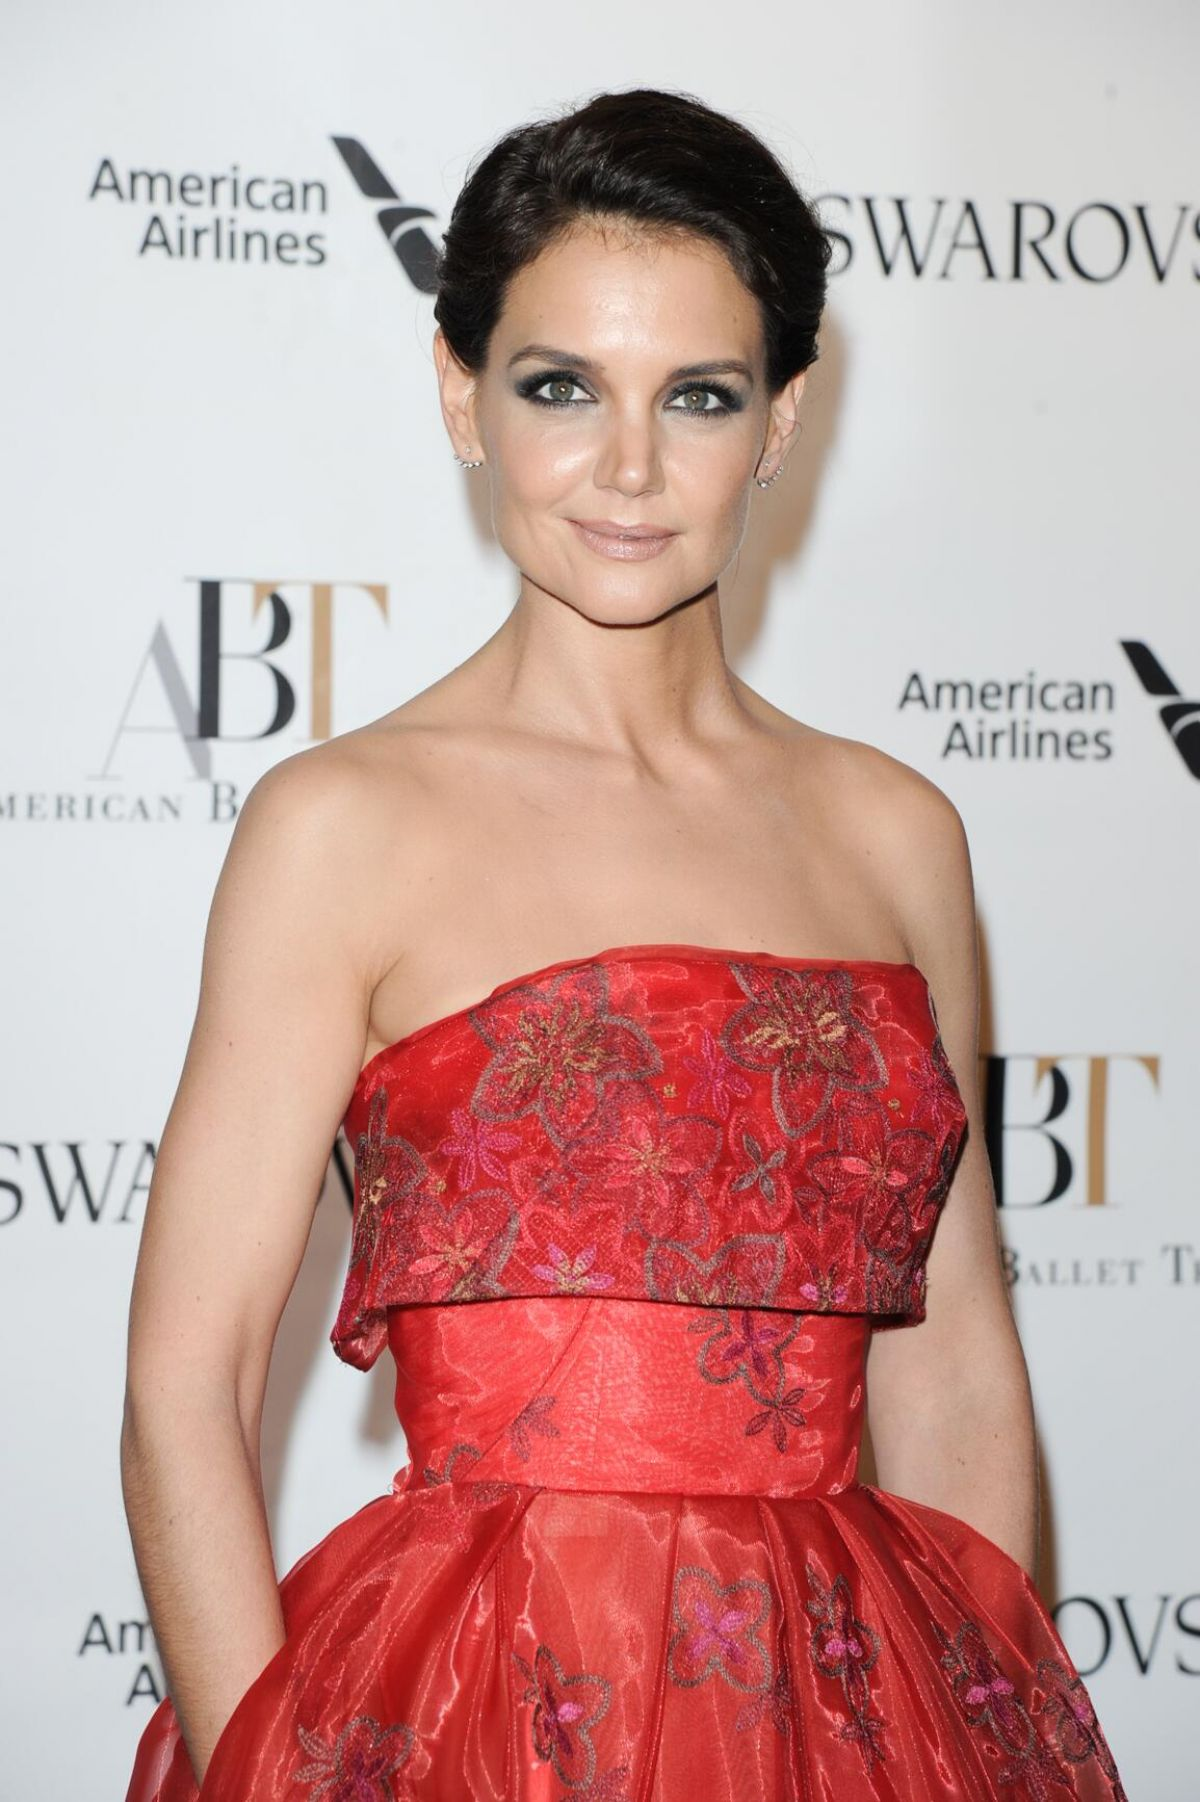 Katie Holmes At ABT Spring Gala in NYC